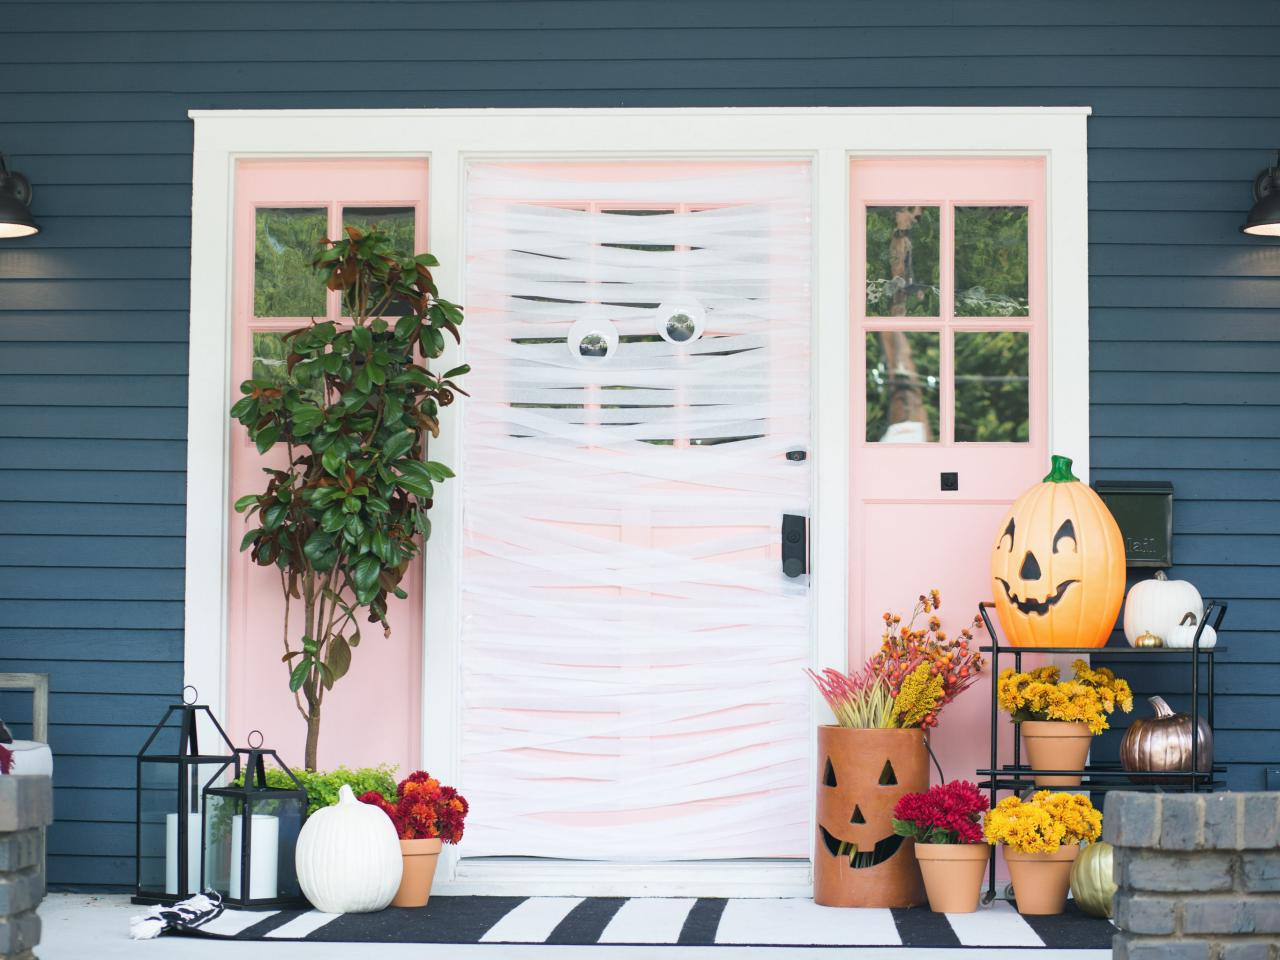 A pink front entry door decorated with crepe paper ribbons and large googly eyes, resembling a large mummy.